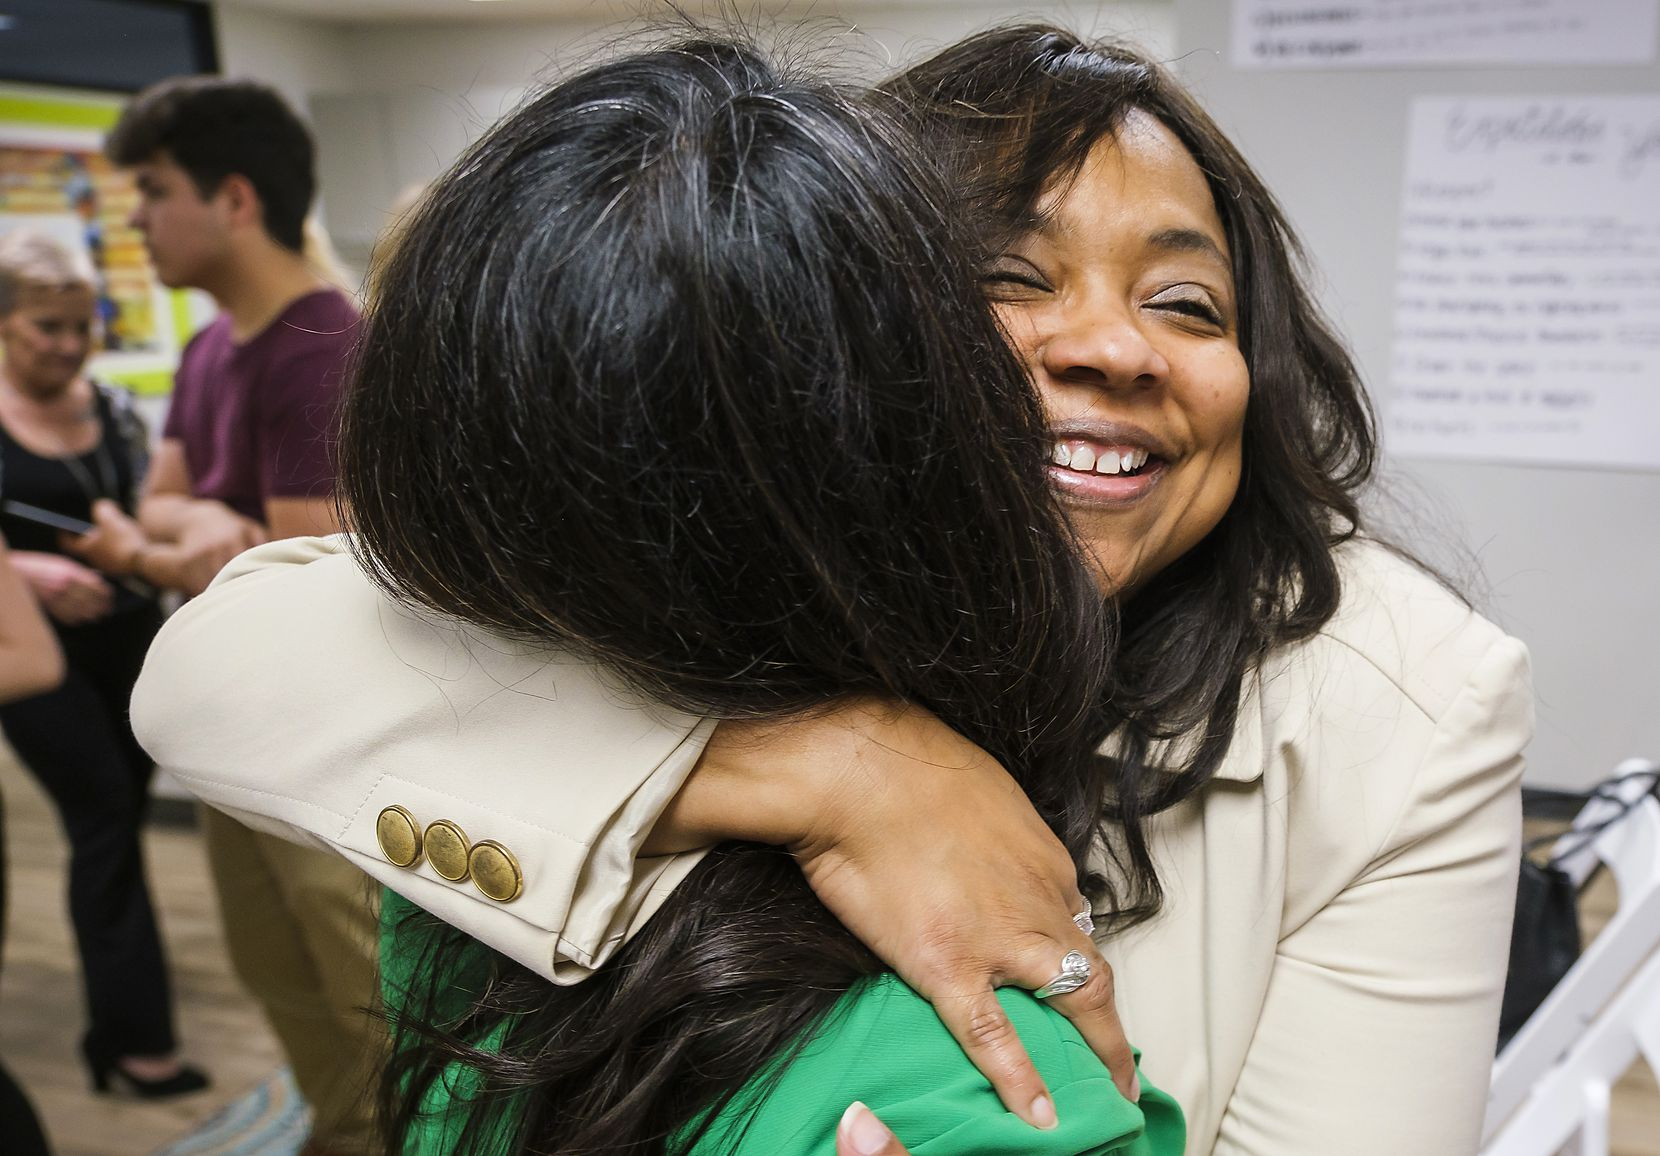 Lavinia Masters hugs Rep. Victoria Neave after Gov. Greg Abbott signed House Bill 8 during a bill signing ceremony at New Friends New Life on Tuesday, June 4, 2019, in Dallas. House Bill 8 is named after Masters, a Dallas survivor whose rape kit sat on a shelf for more than 21 years after she was raped at knifepoint in her home when she was 13. The governor signed legislation related to human trafficking and the elimination of the rape kit backlog.